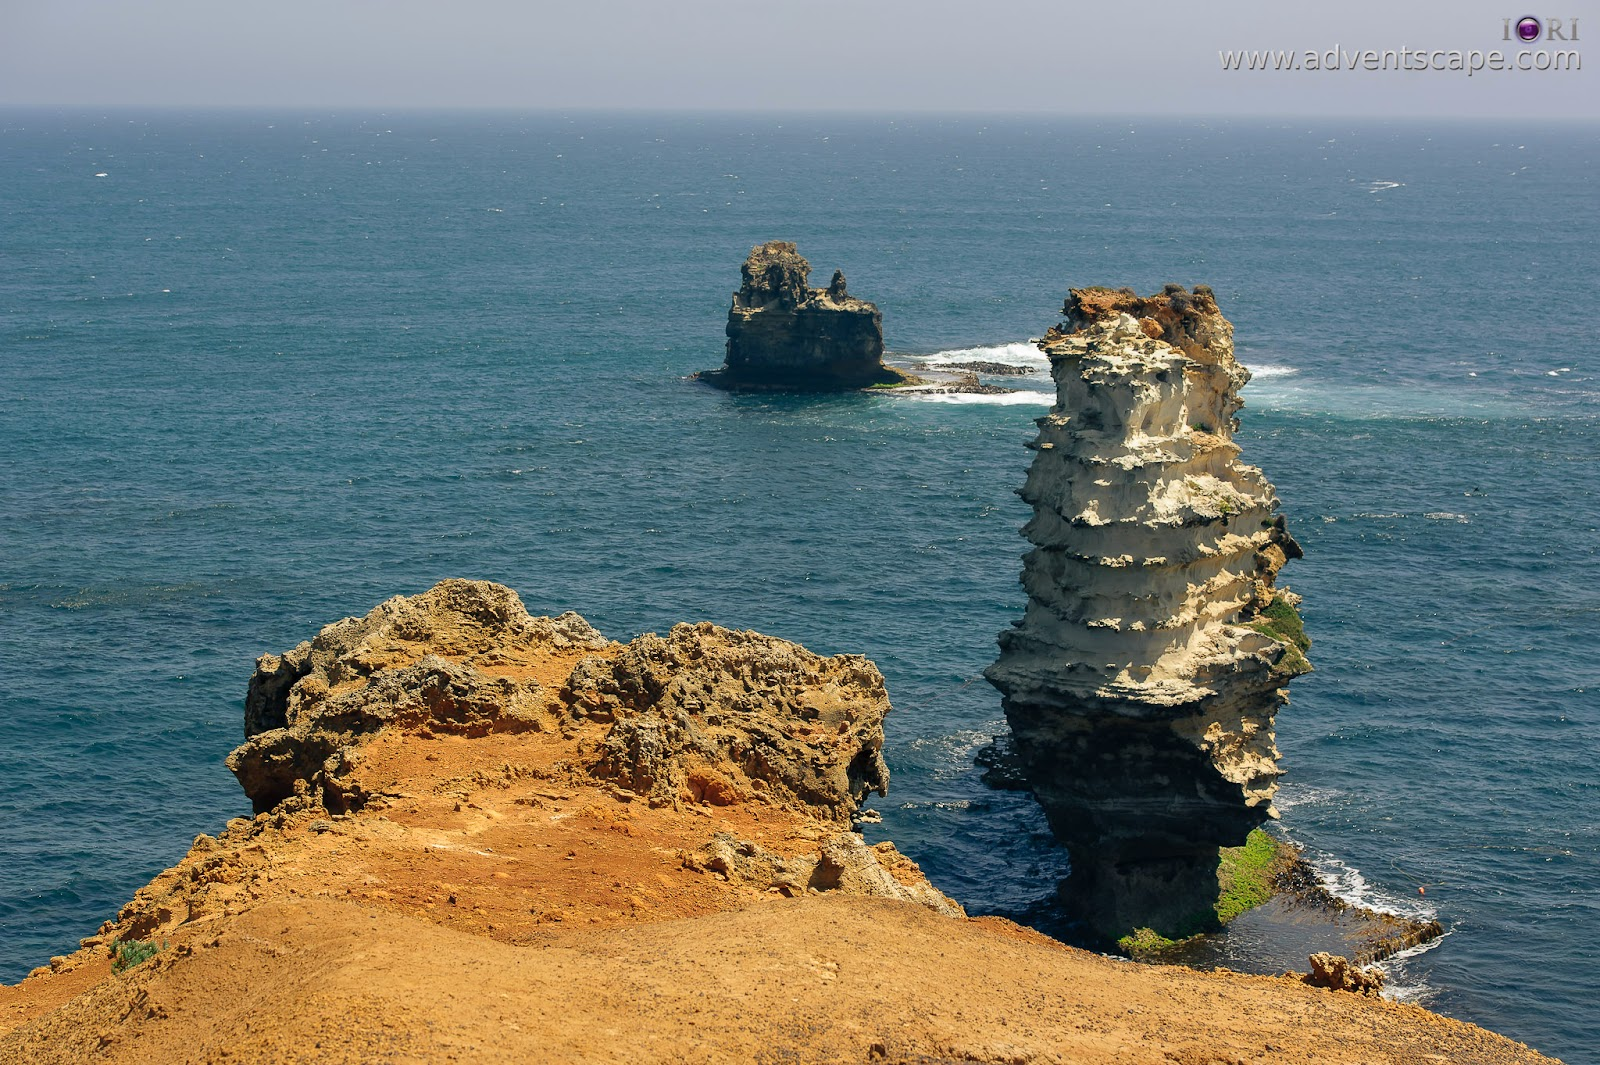 australia, Australian Landscape Photographer, Bay of Islands, Great Ocean Road, Peterborough, Philip Avellana, victoria, Warrnambool, rock formation, coastline, Apollo Bay, Great Australian Bight